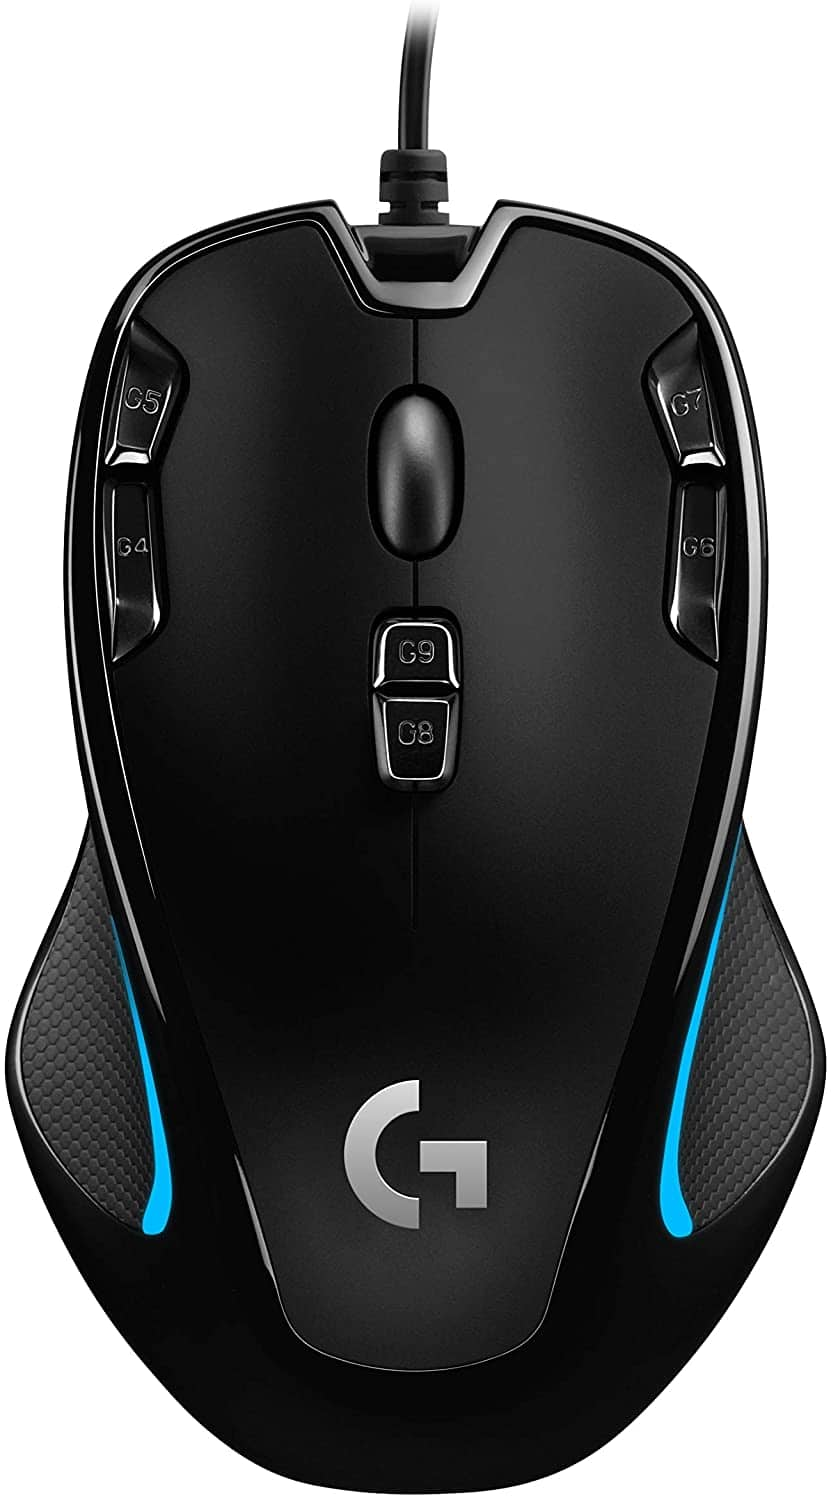 Logitech G300s Optical Ambidextrous Gaming Mouse – 9 Programmable Buttons, Onboard Memory $20.99